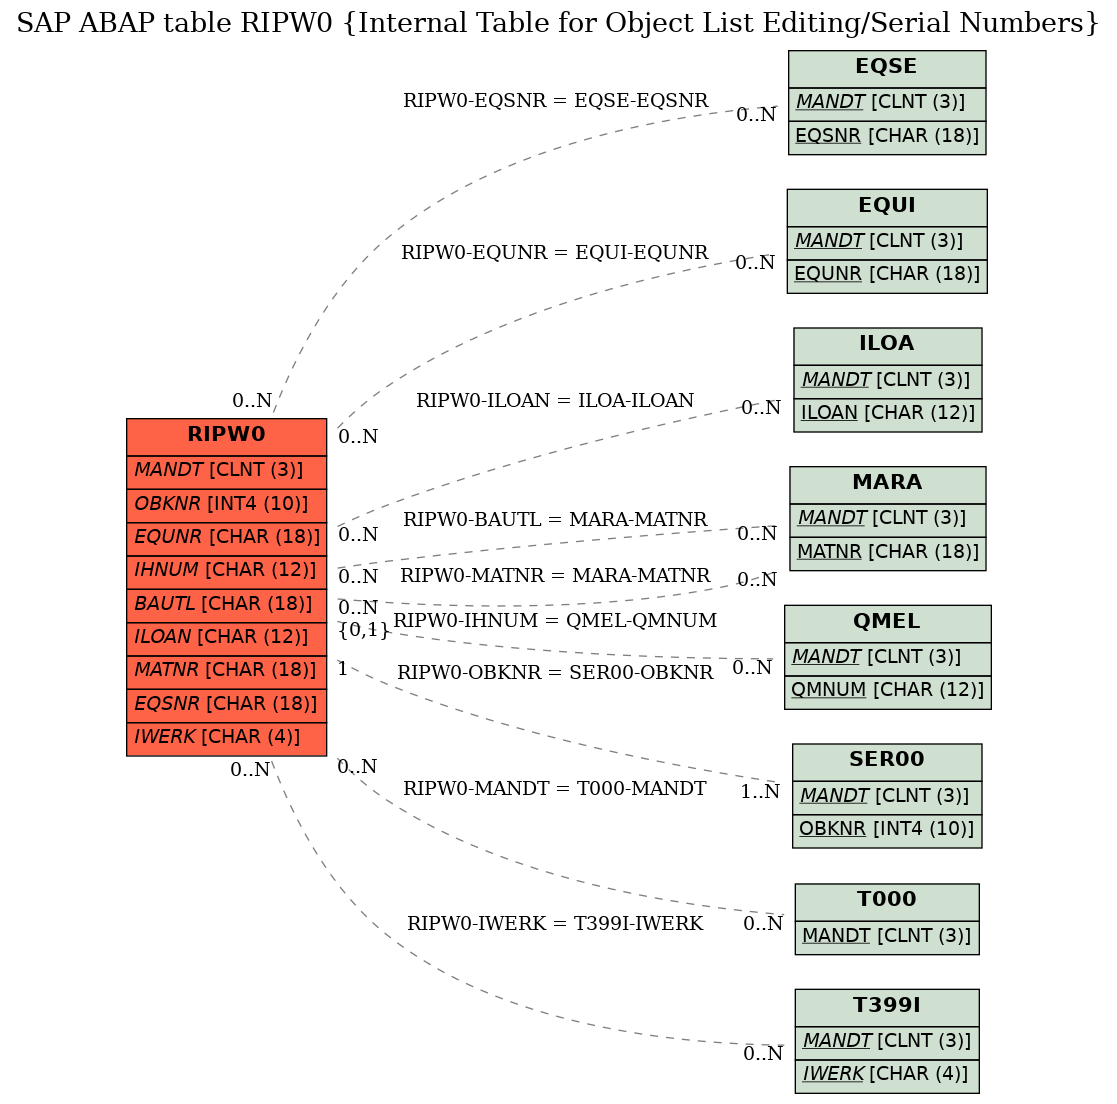 sap serial number history table